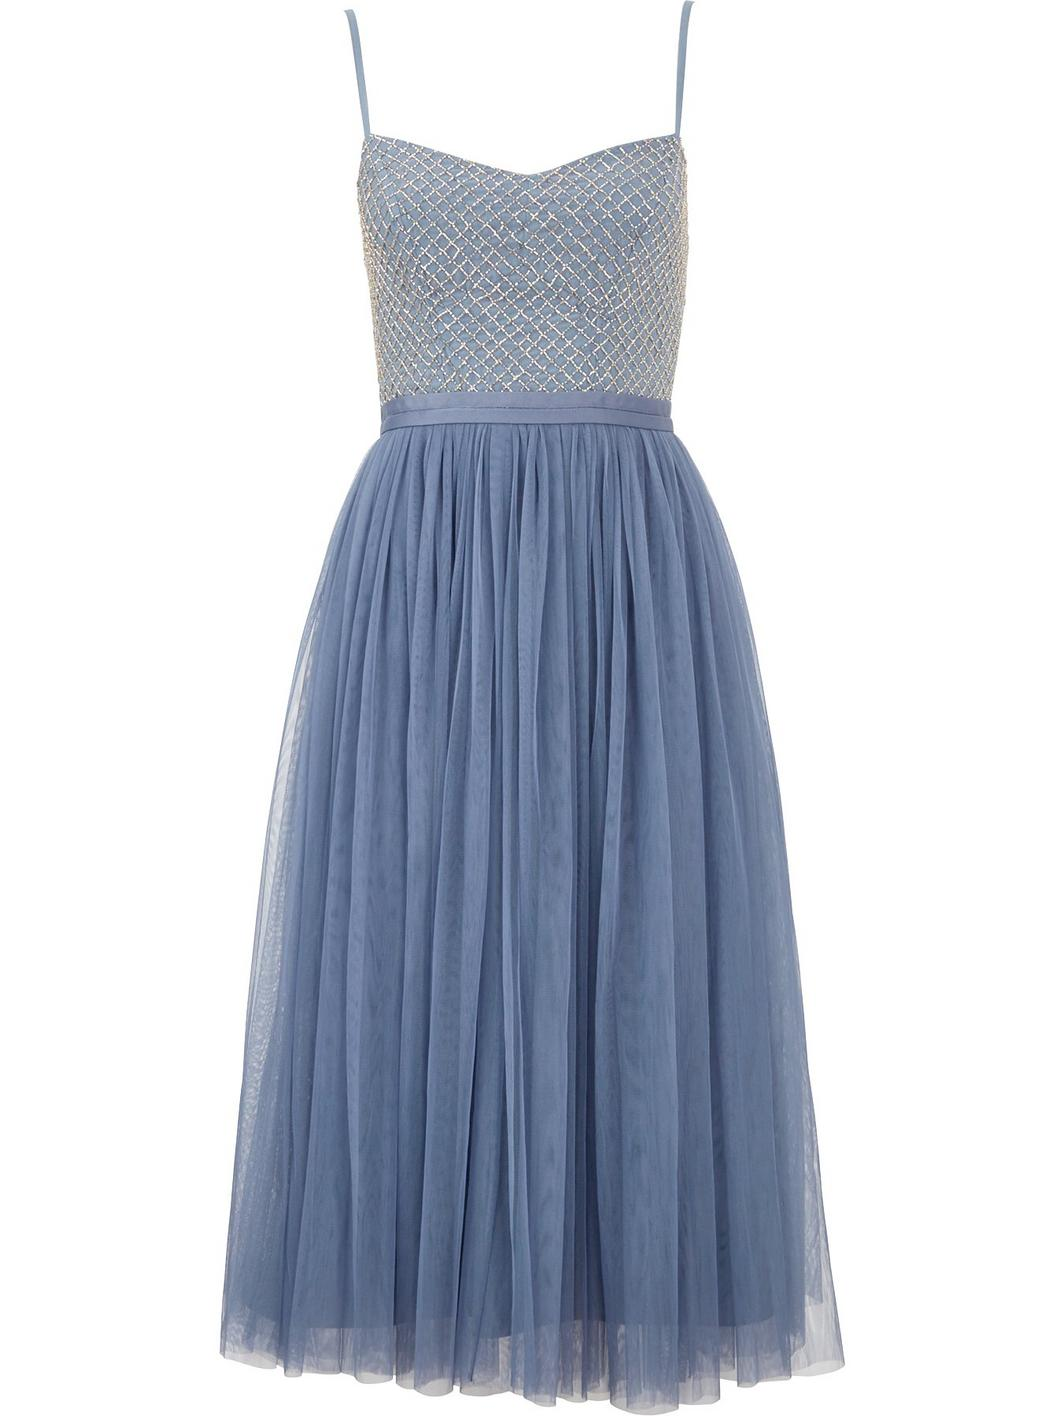 £130.00 at Very Exclusive